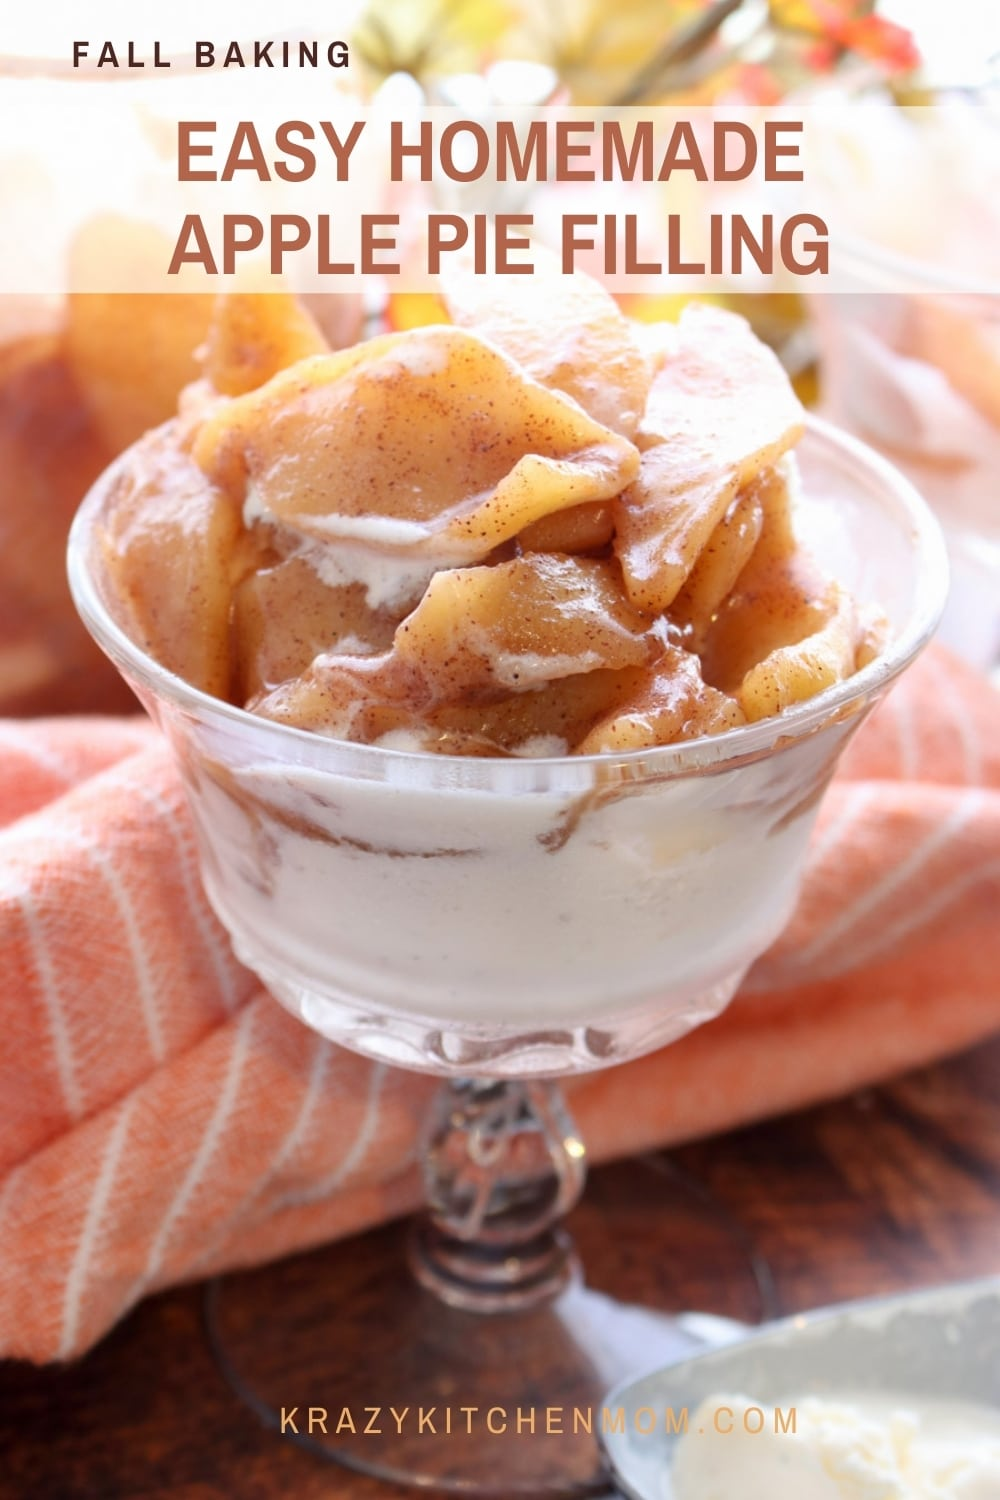 This fail-proof stove-top apple pie filling is ready in less than 30 minutes. It's super simple, freezer-friendly, and ready for all of your holiday baking. via @krazykitchenmom